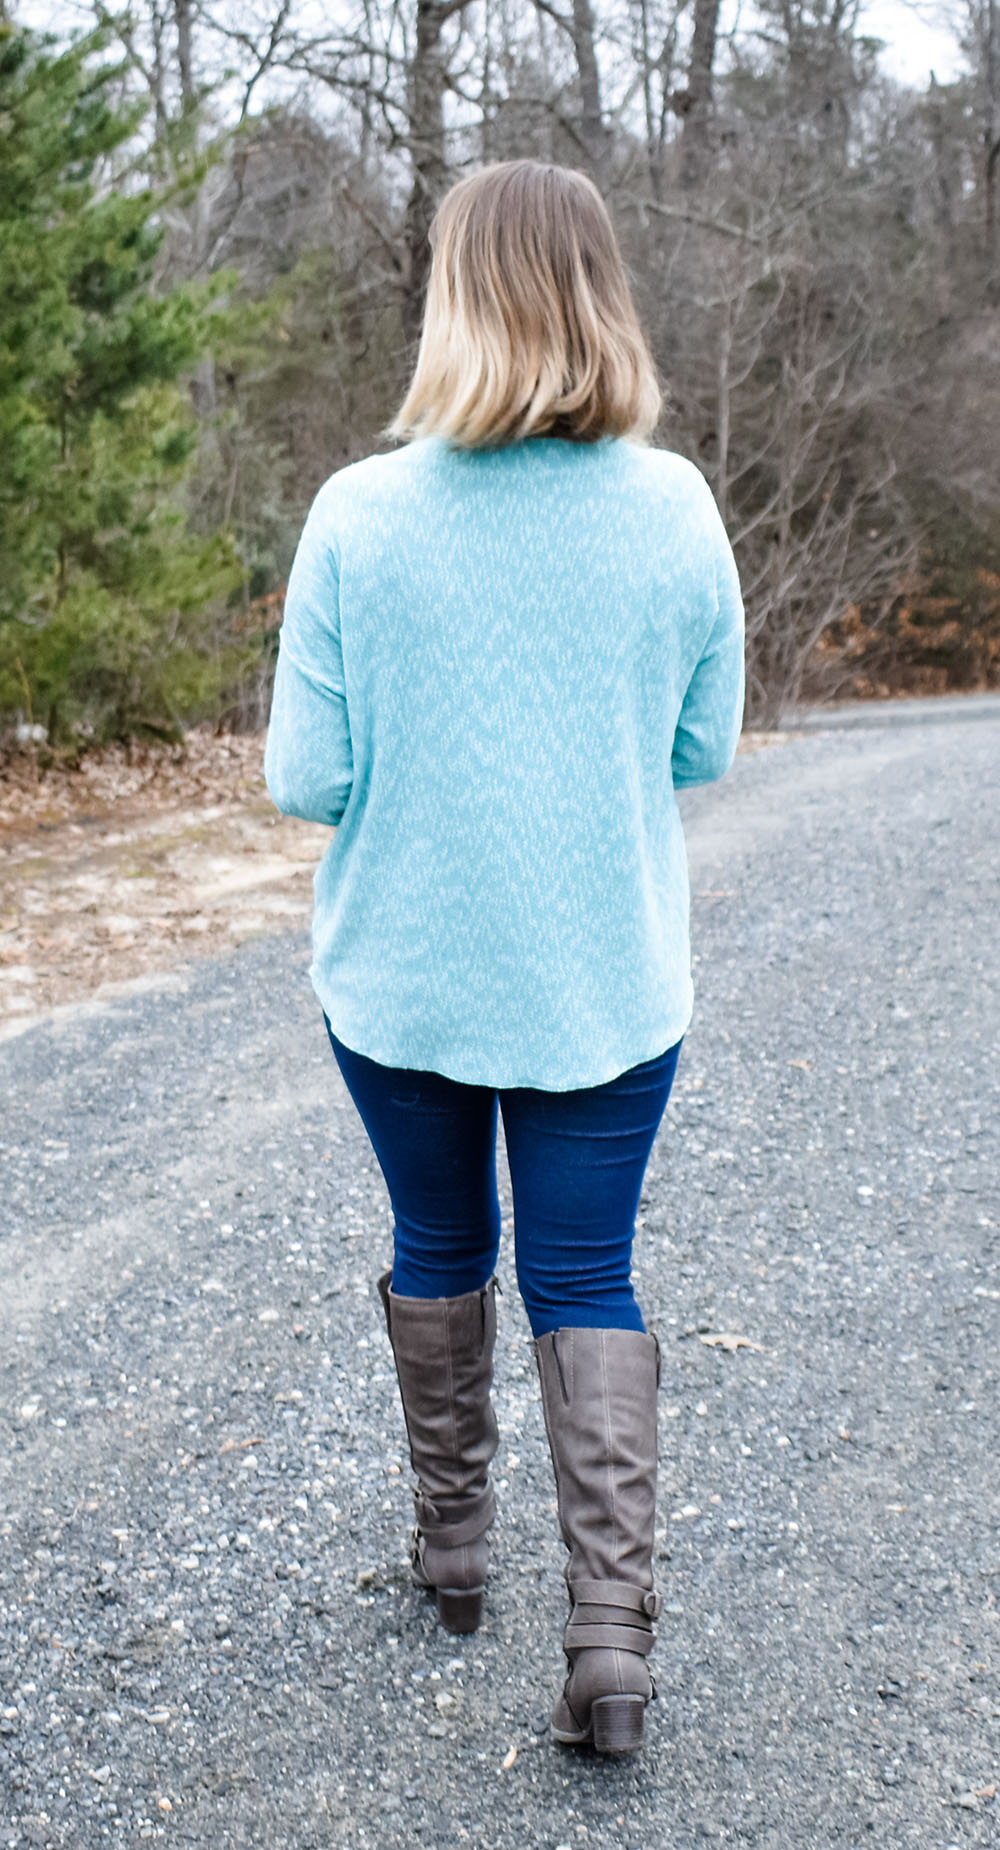 Lisette's Lace-Up Sweater Sizes XXS to 3X Adults PDF Pattern